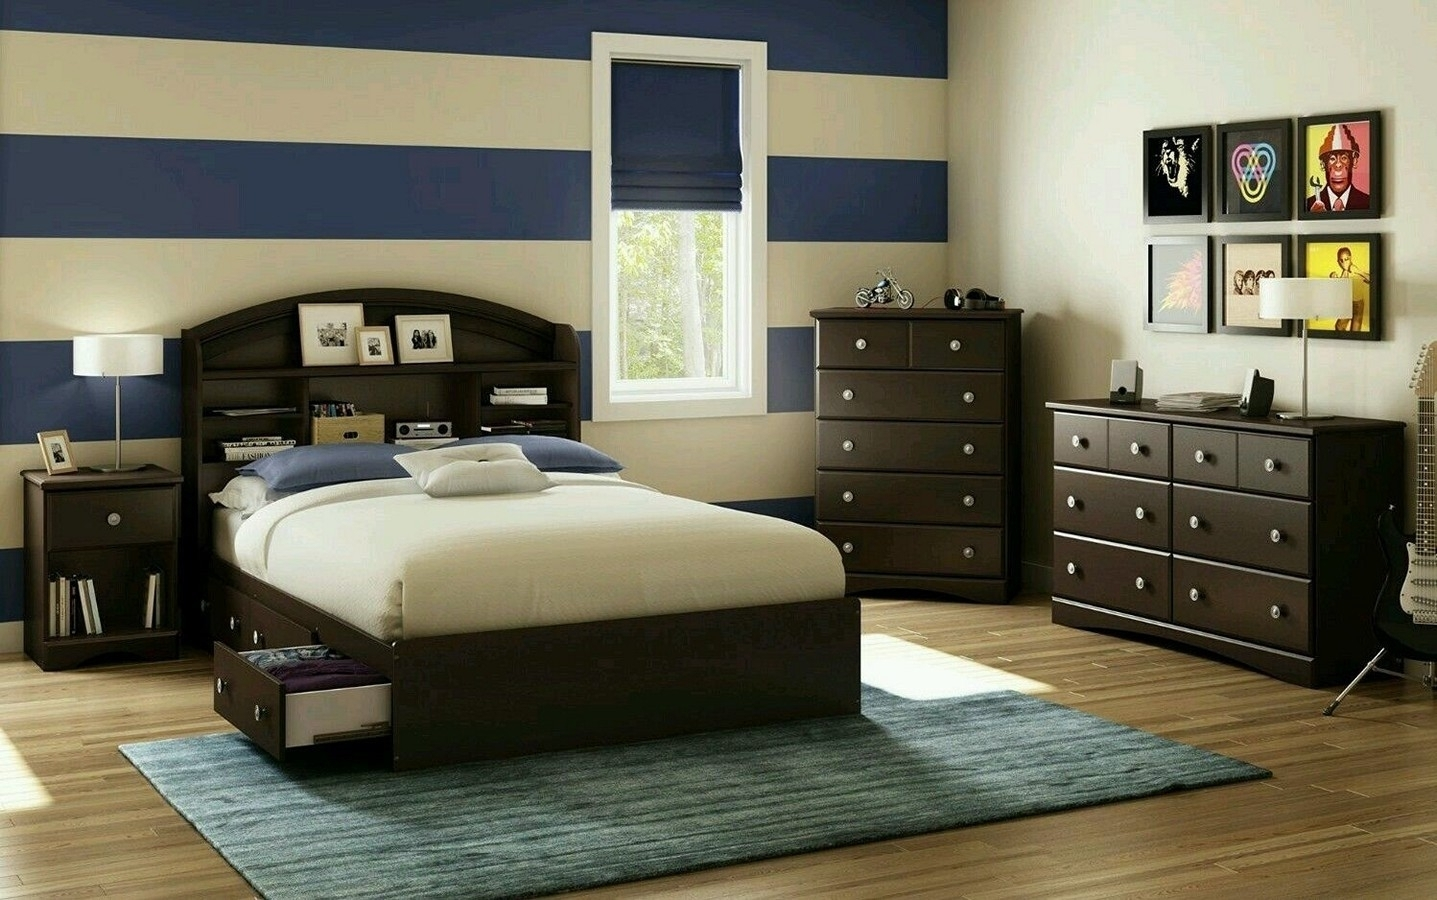 Young Adult Men Bedroom Ideas — Randolph Indoor and Outdoor Design